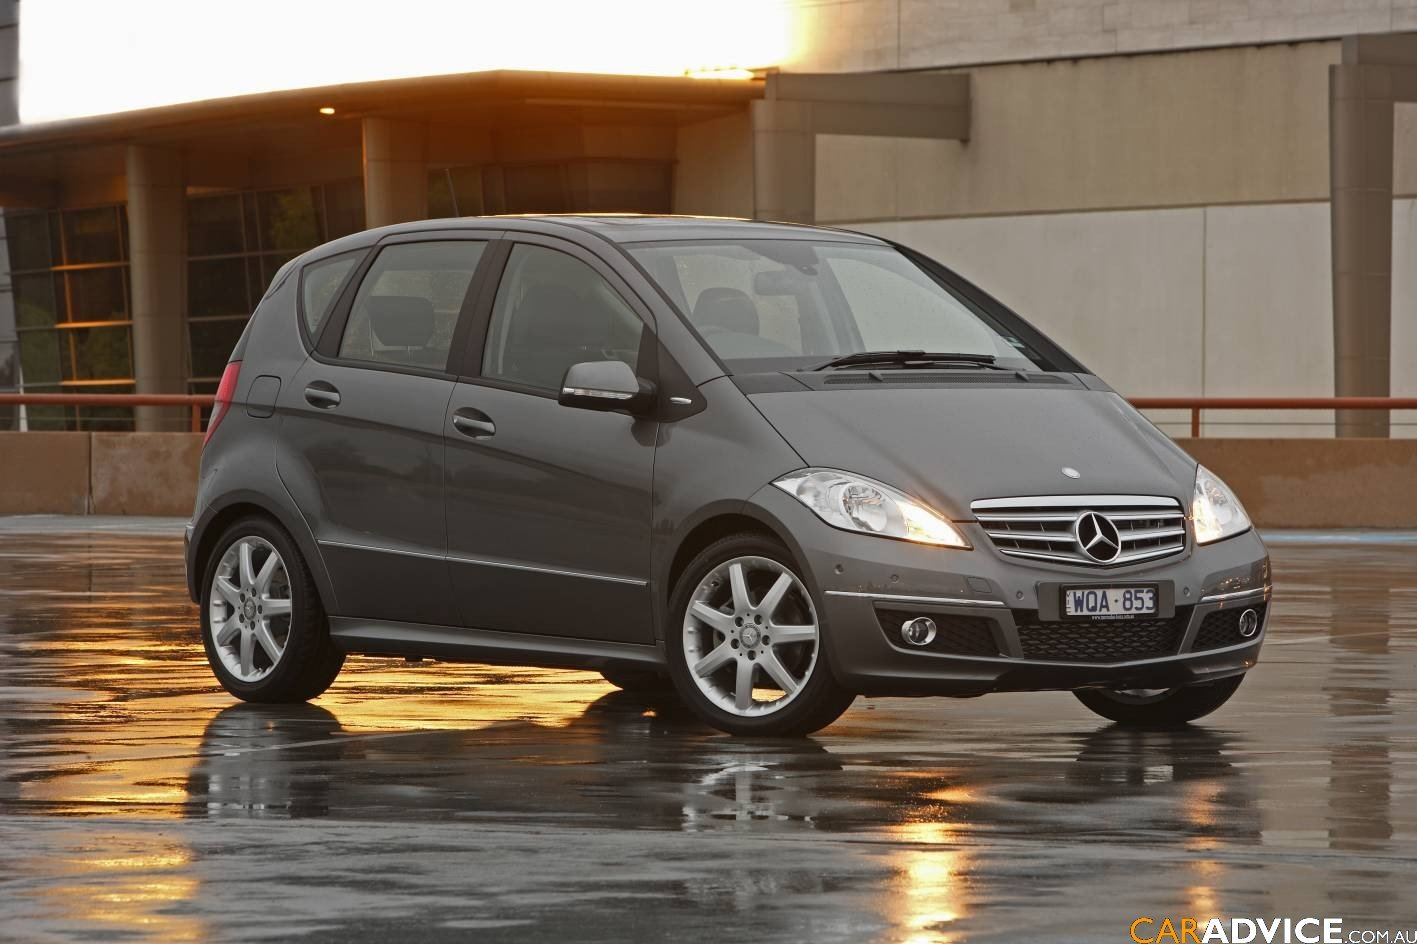 2009 Mercedes-Benz A-Class range - photos | CarAdvice